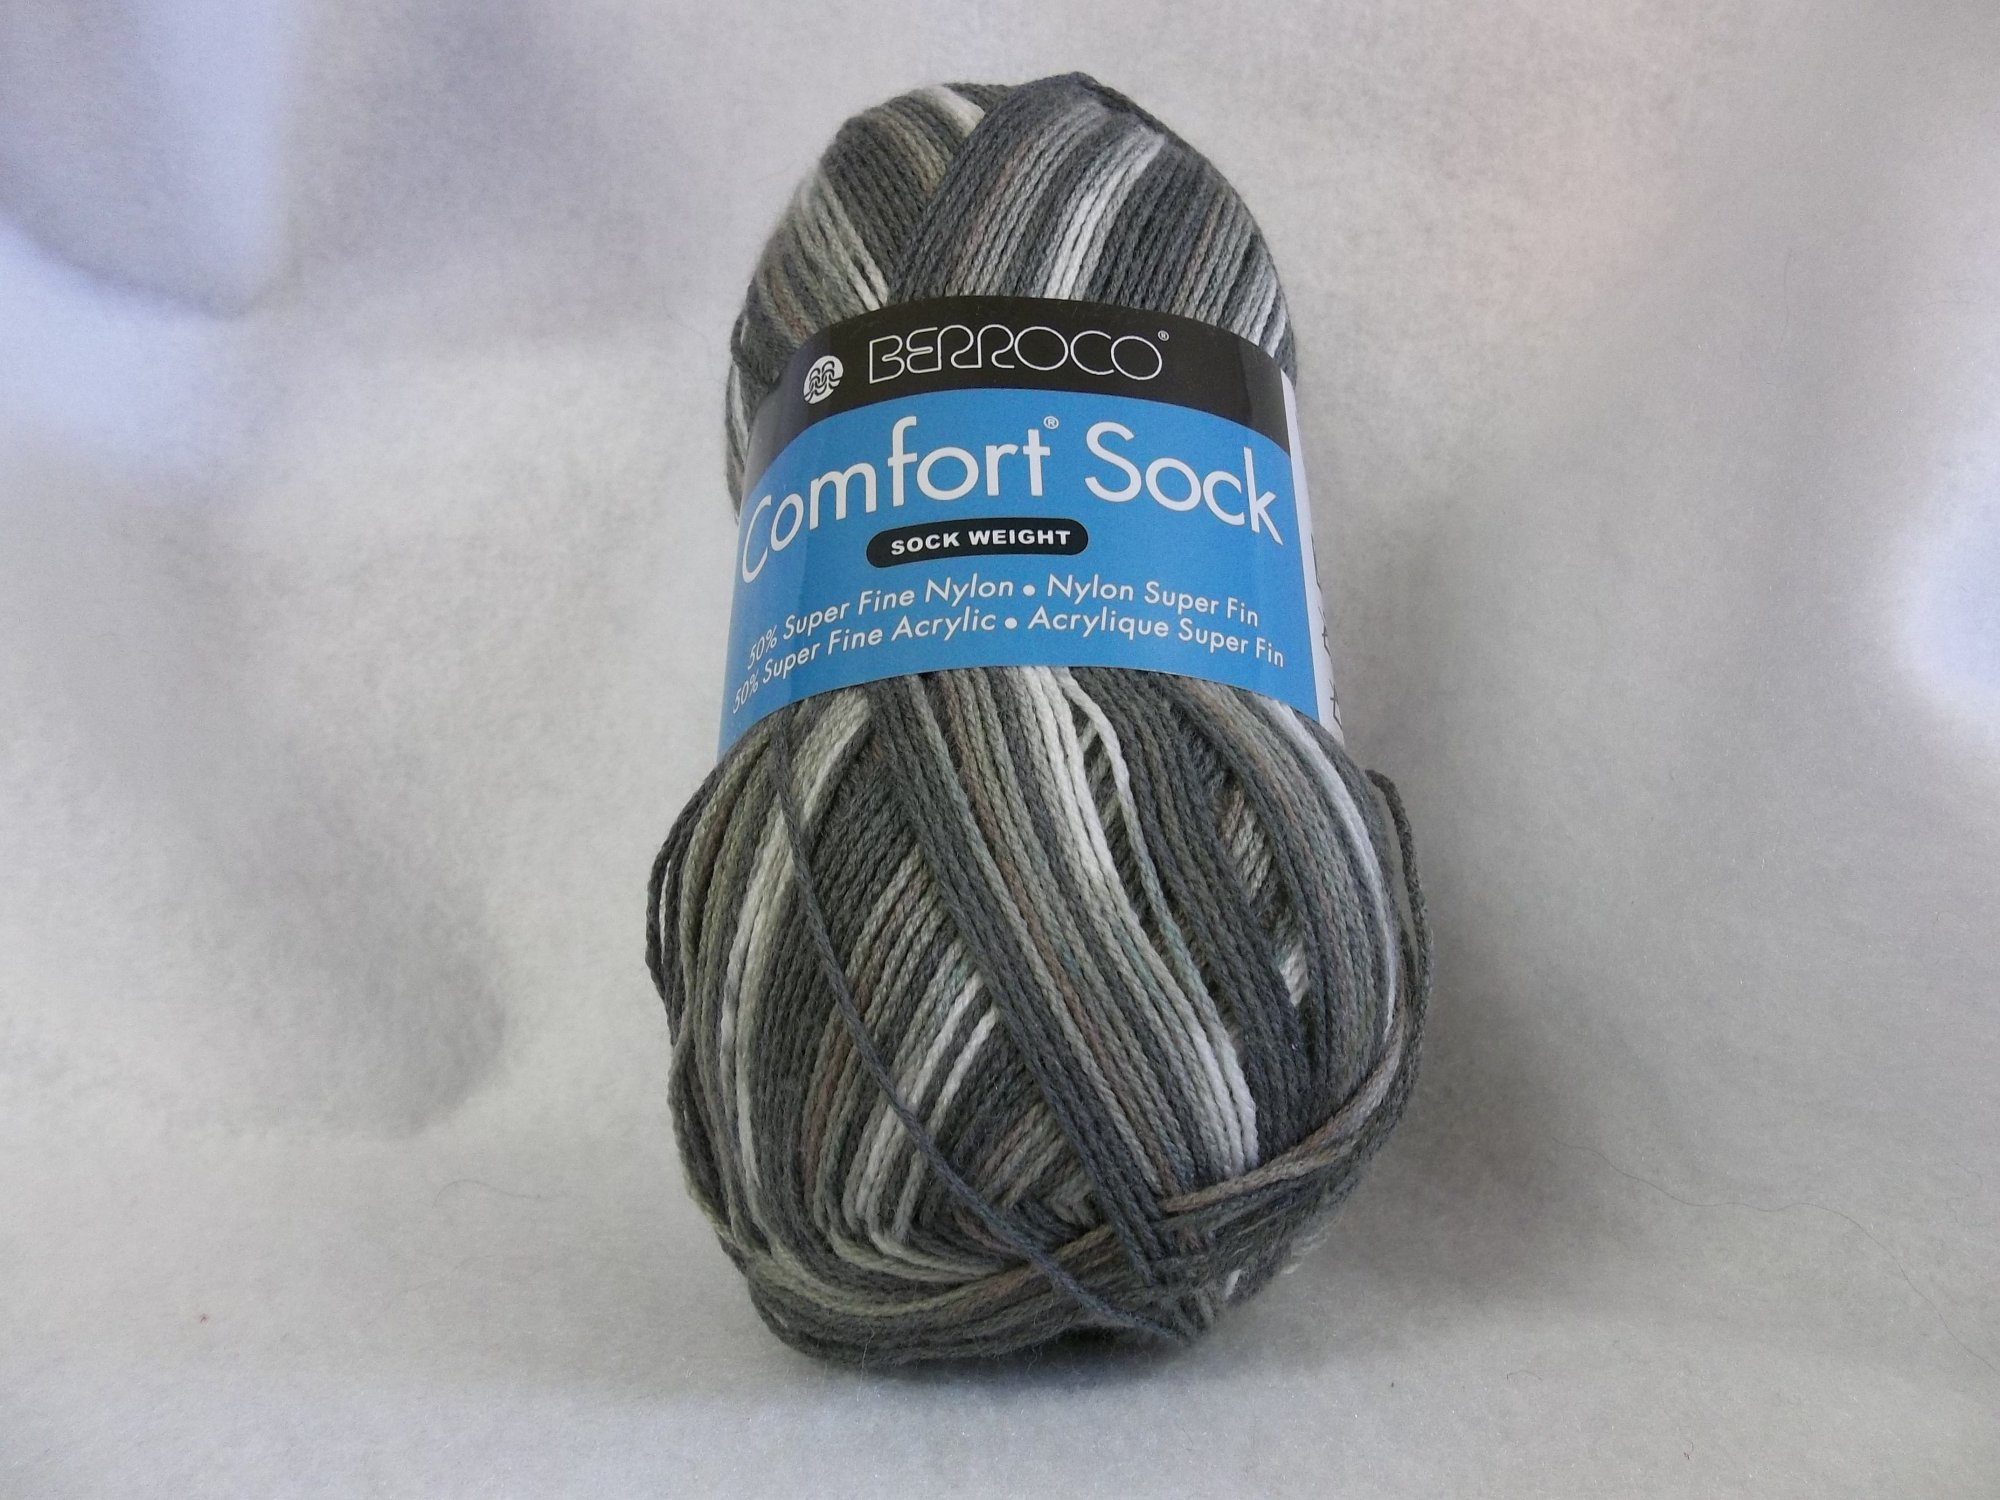 Comfort Sock - Color 1814 - Greys and Browns